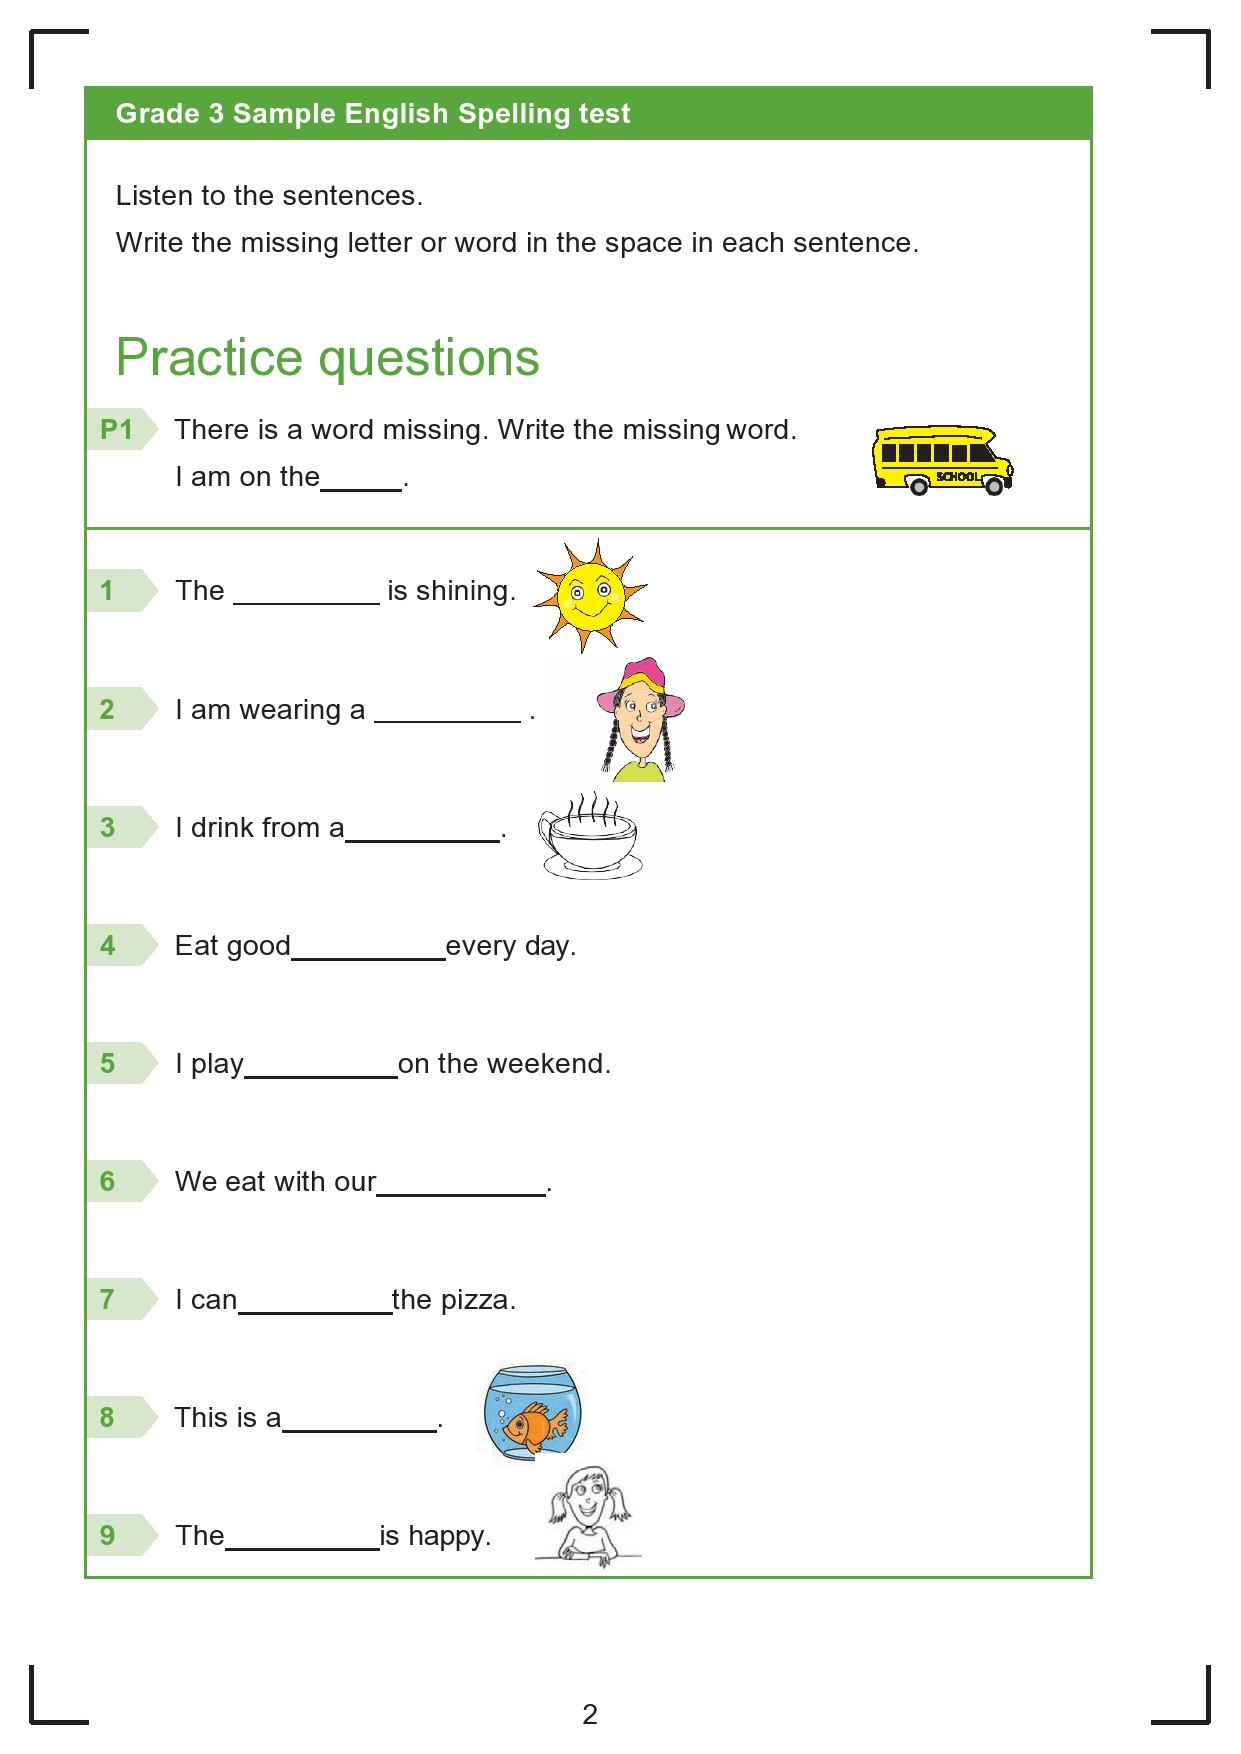 hight resolution of 38 Printable Spelling Test Templates Word \u0026 PDF ᐅ TemplateLab